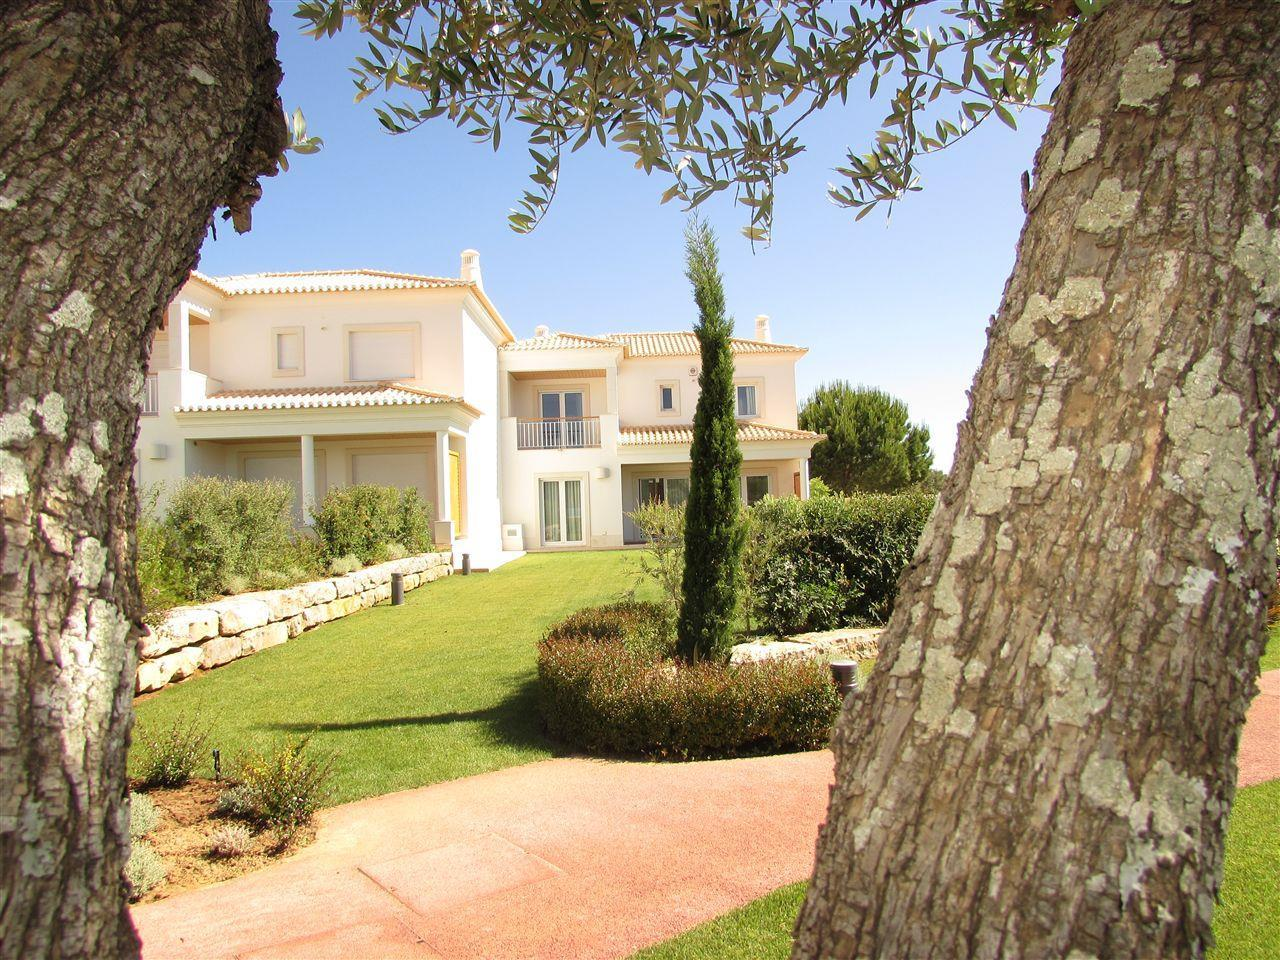 Single Family Home for Sale at Terraced house, 5 bedrooms, for Sale Loule, Algarve Portugal